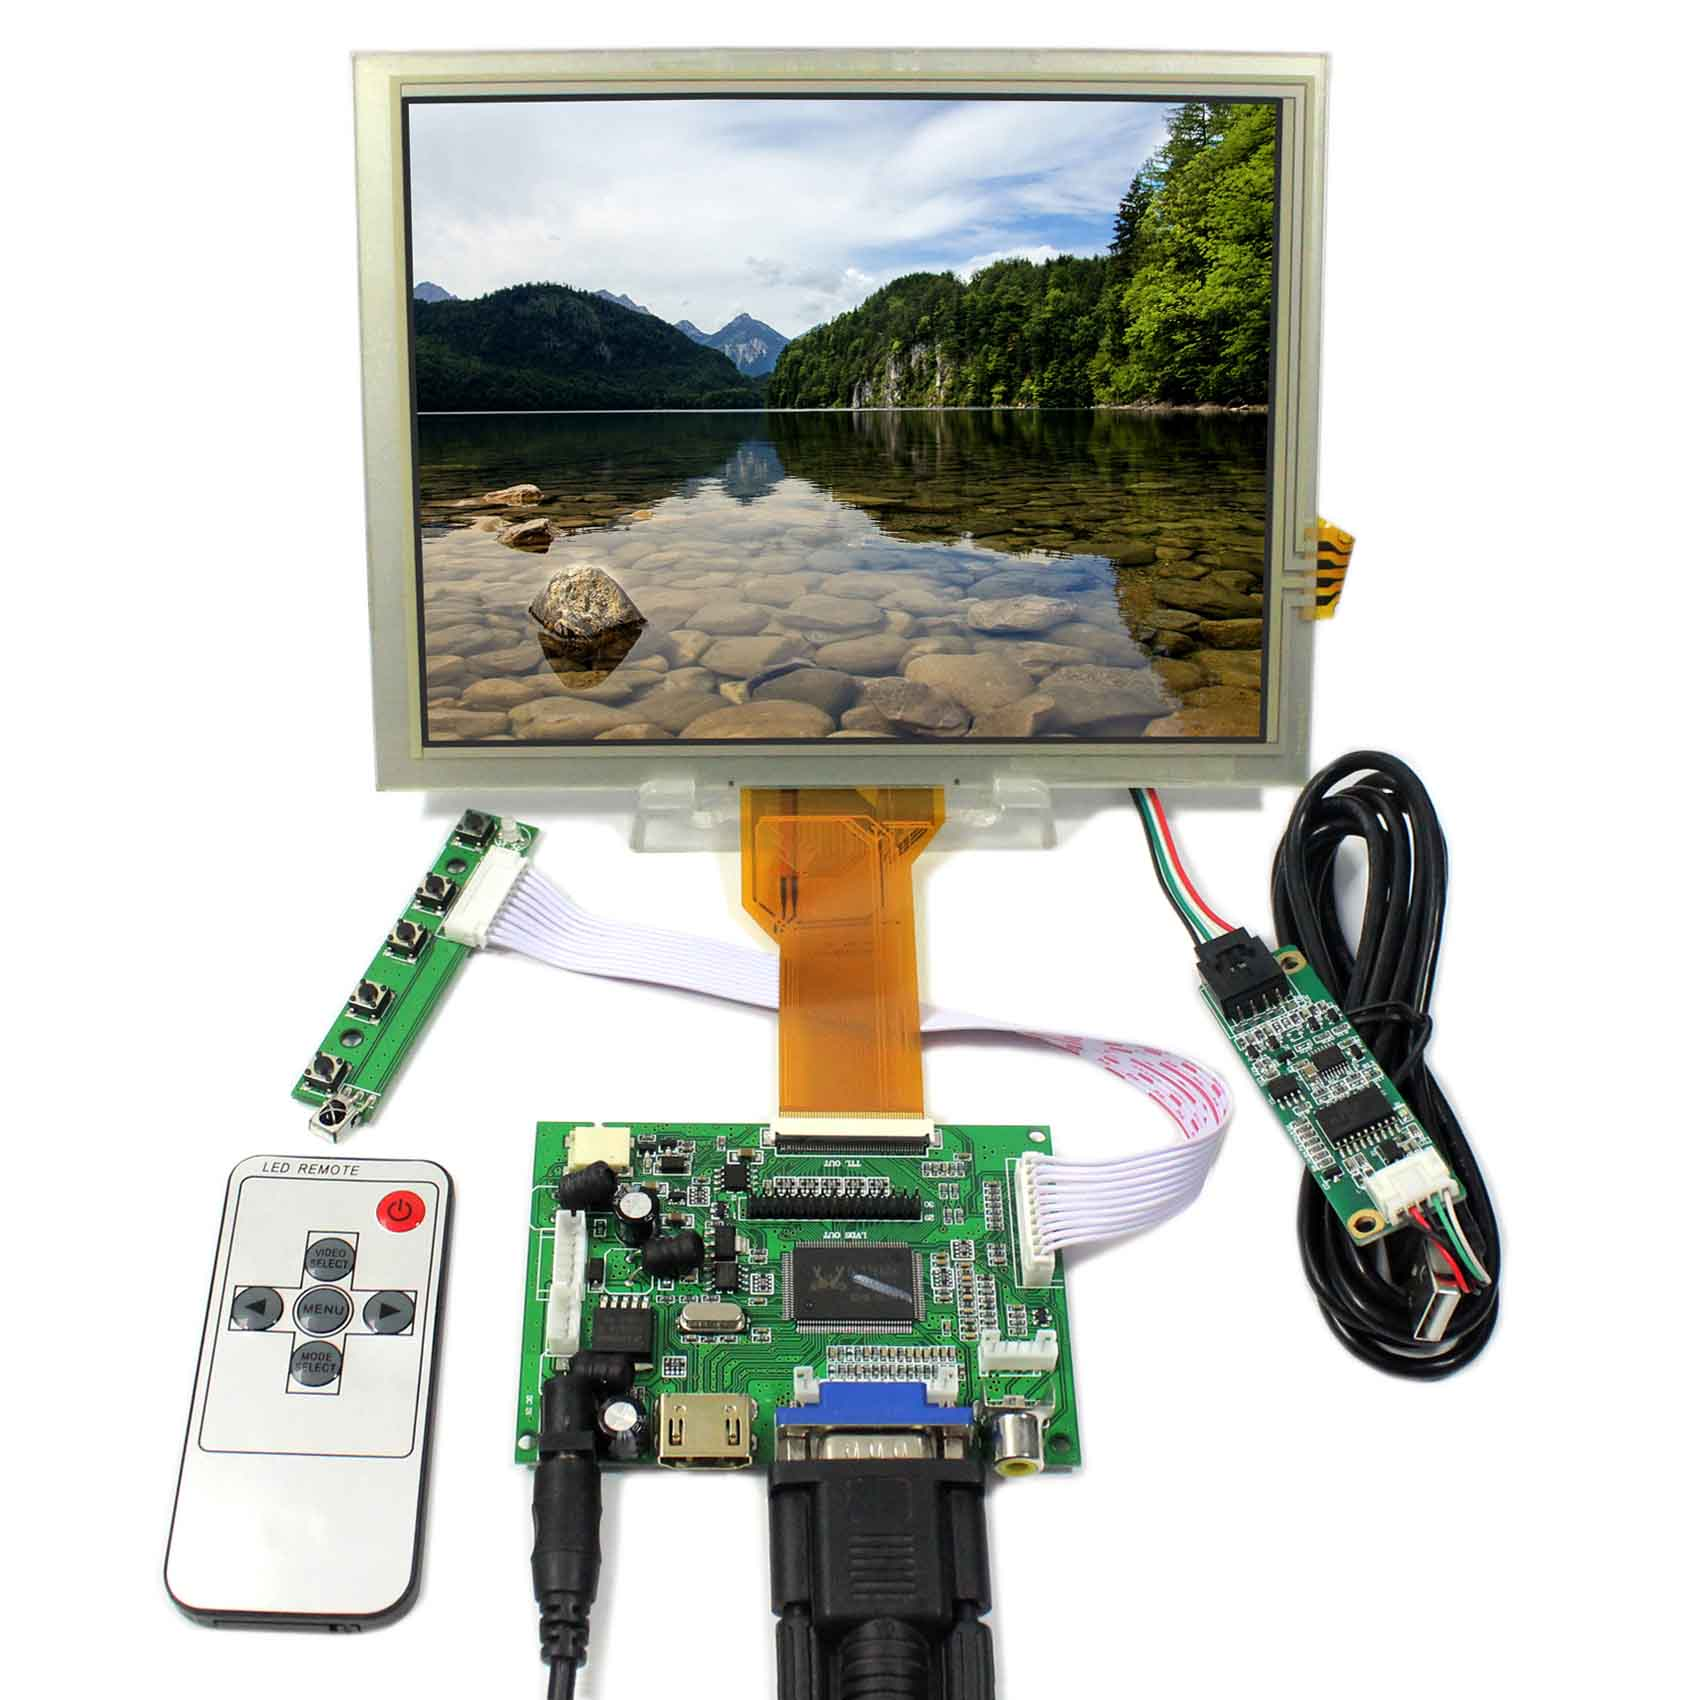 HDMI VGA 2AV LCD Controller Board+8inch EJ080NA-05B 800x600 LCD Screen With Touch Panel hdmi vga av audio usb lcd controller board 8inch 800x600 ej080na 05a lcd screen